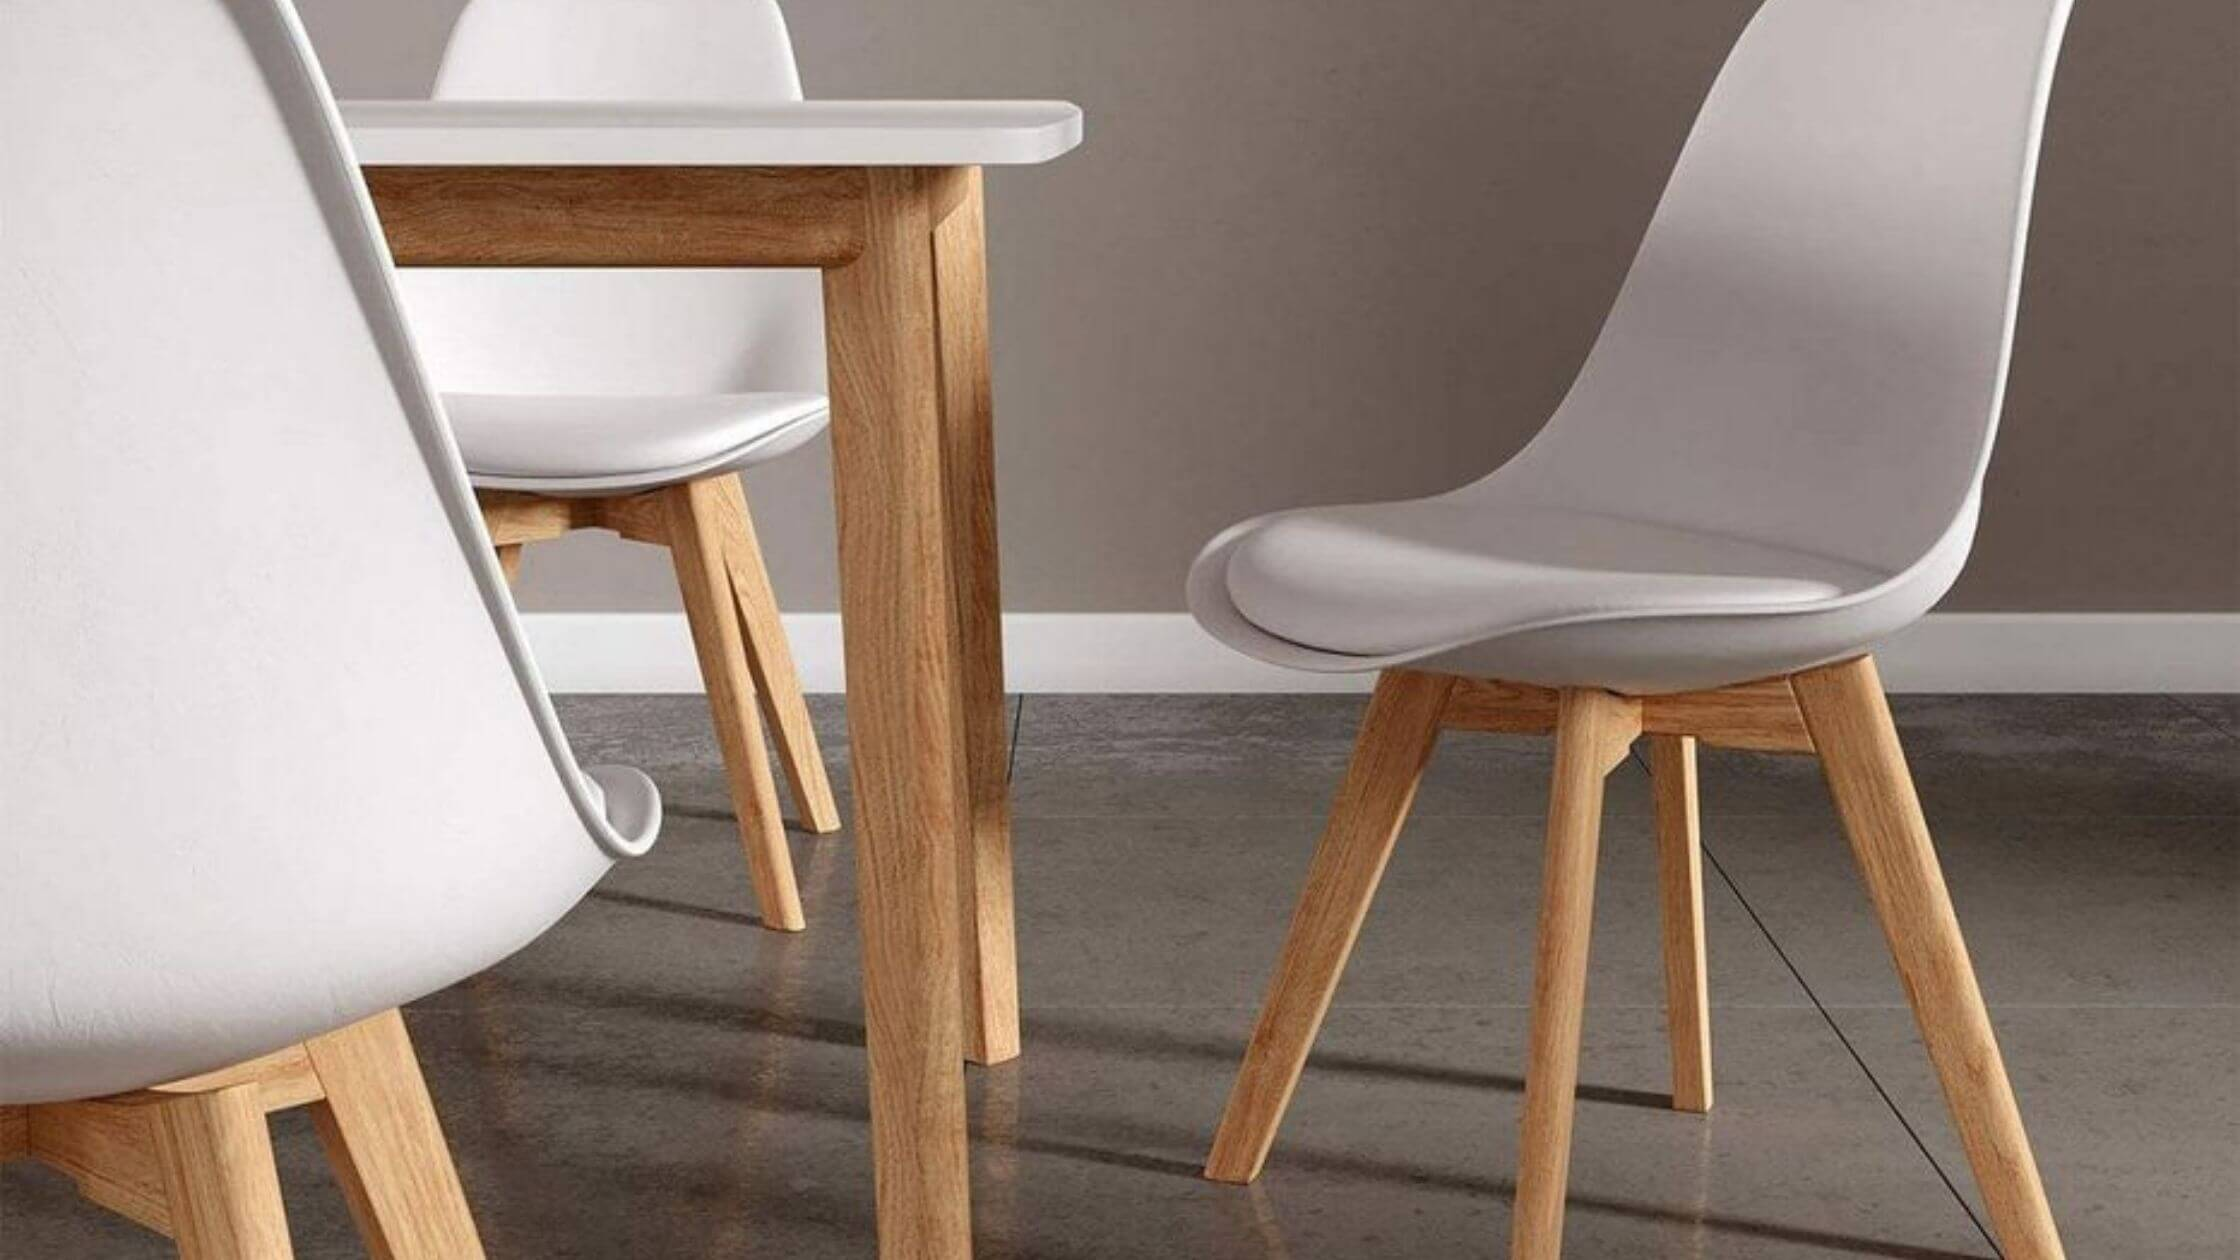 chaise-scandinave-blanche-bois